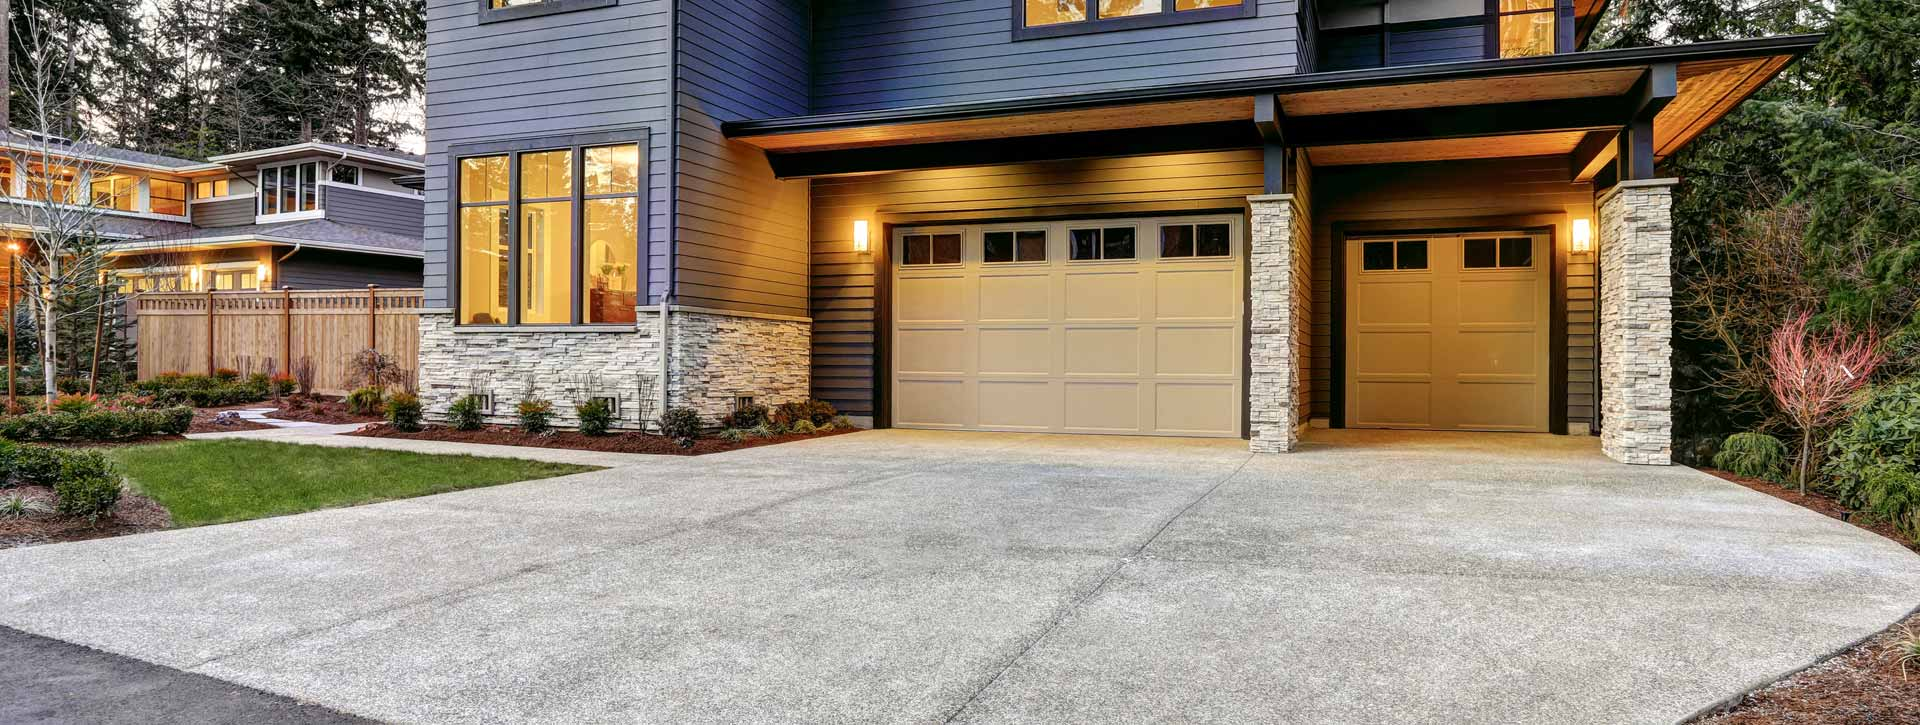 Own A Driveway Company Franchise